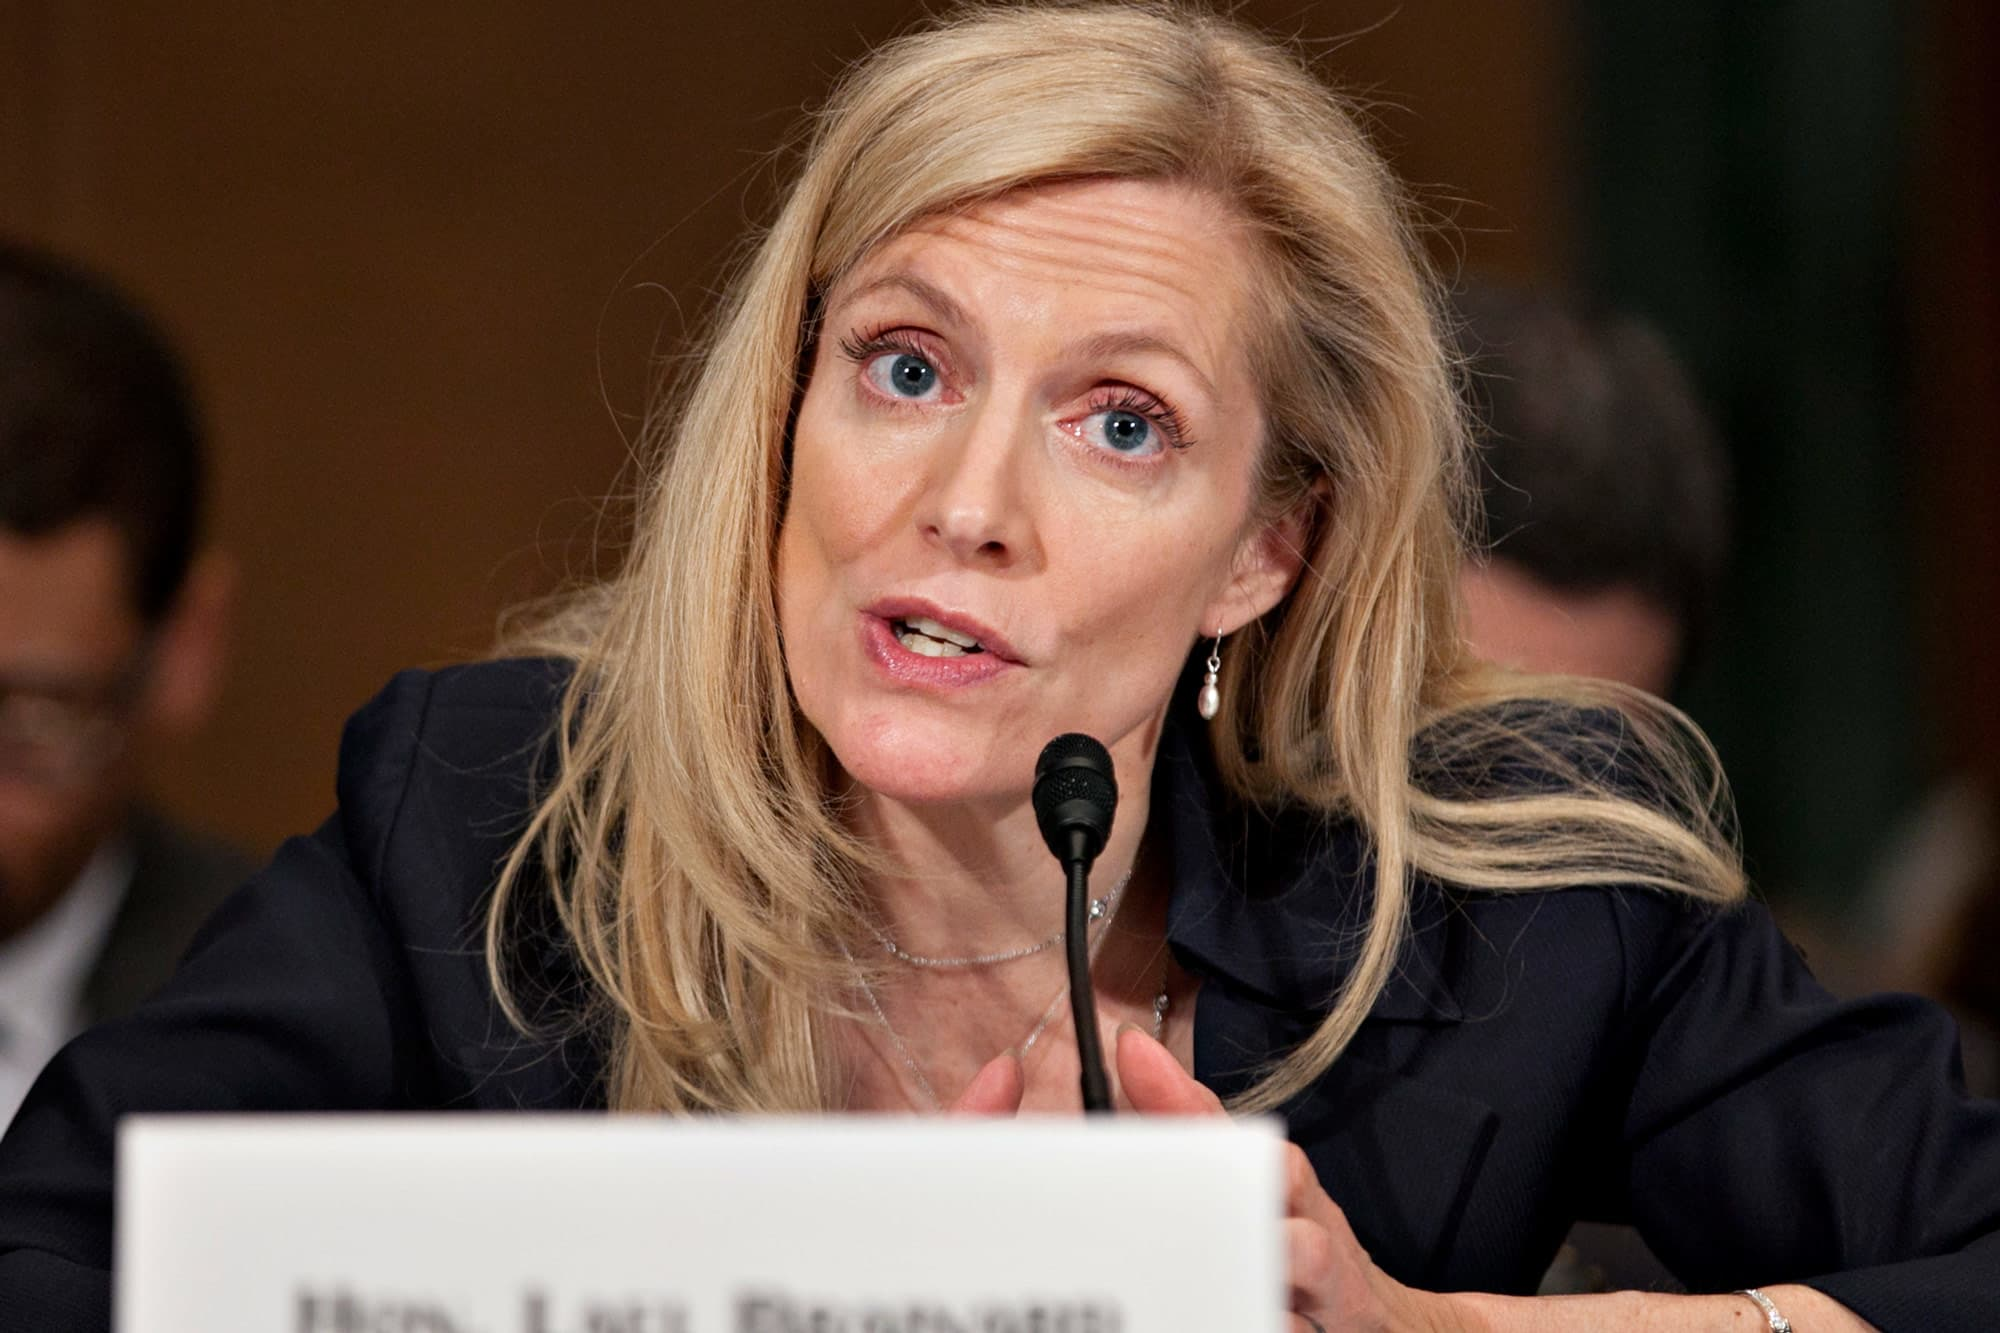 Fed Governor Brainard backs up Powell's view that the Fed is 'prepared to adjust policy'